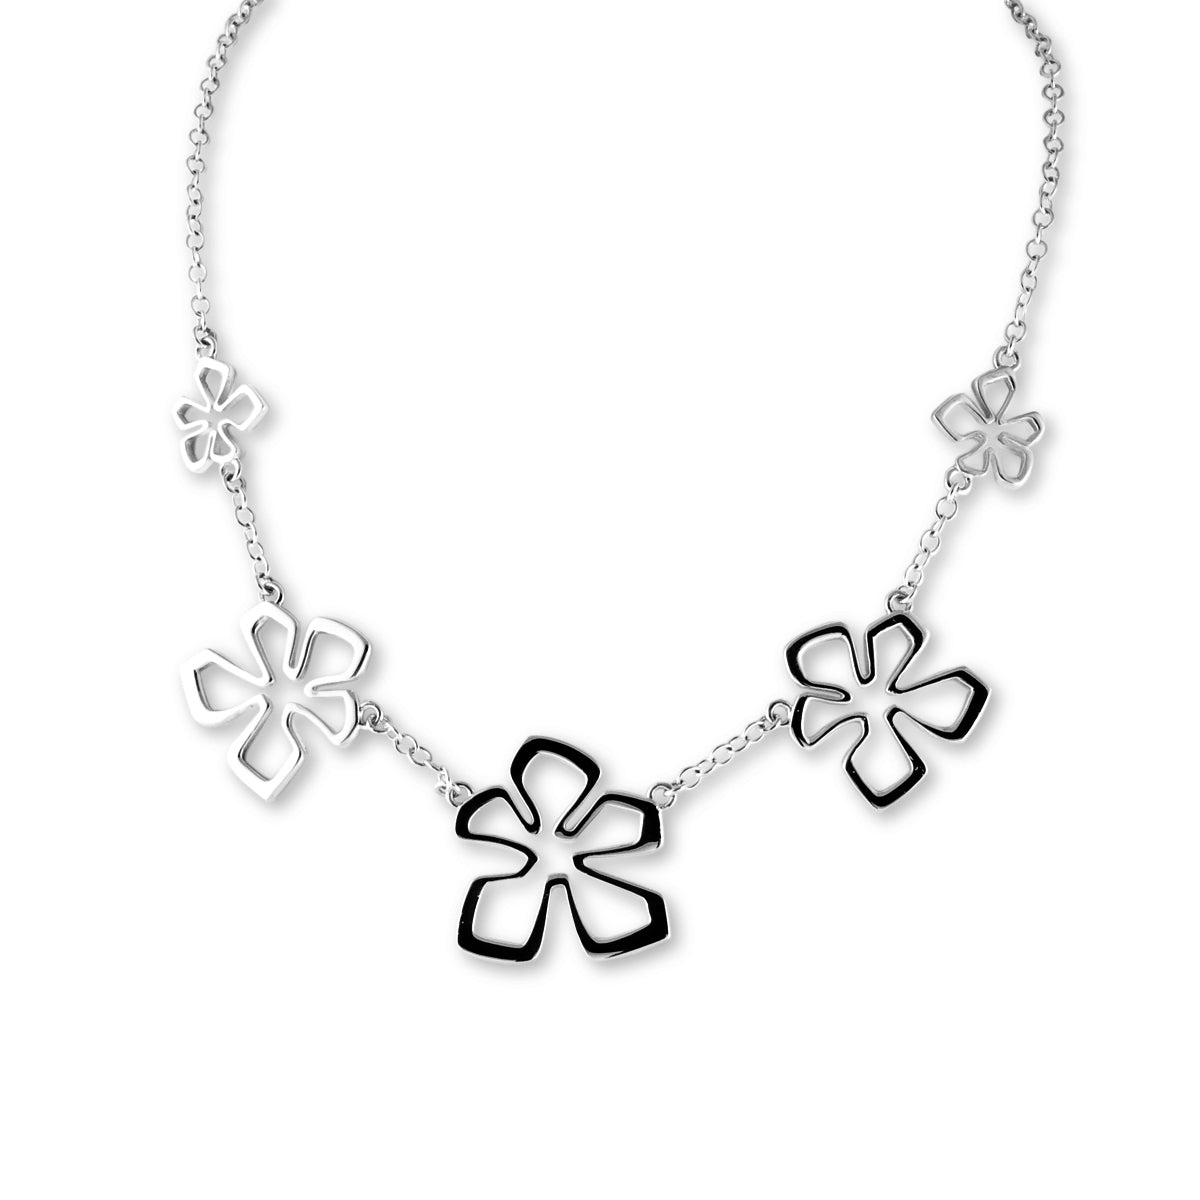 Tiki Flower Necklace, Sterling Silver